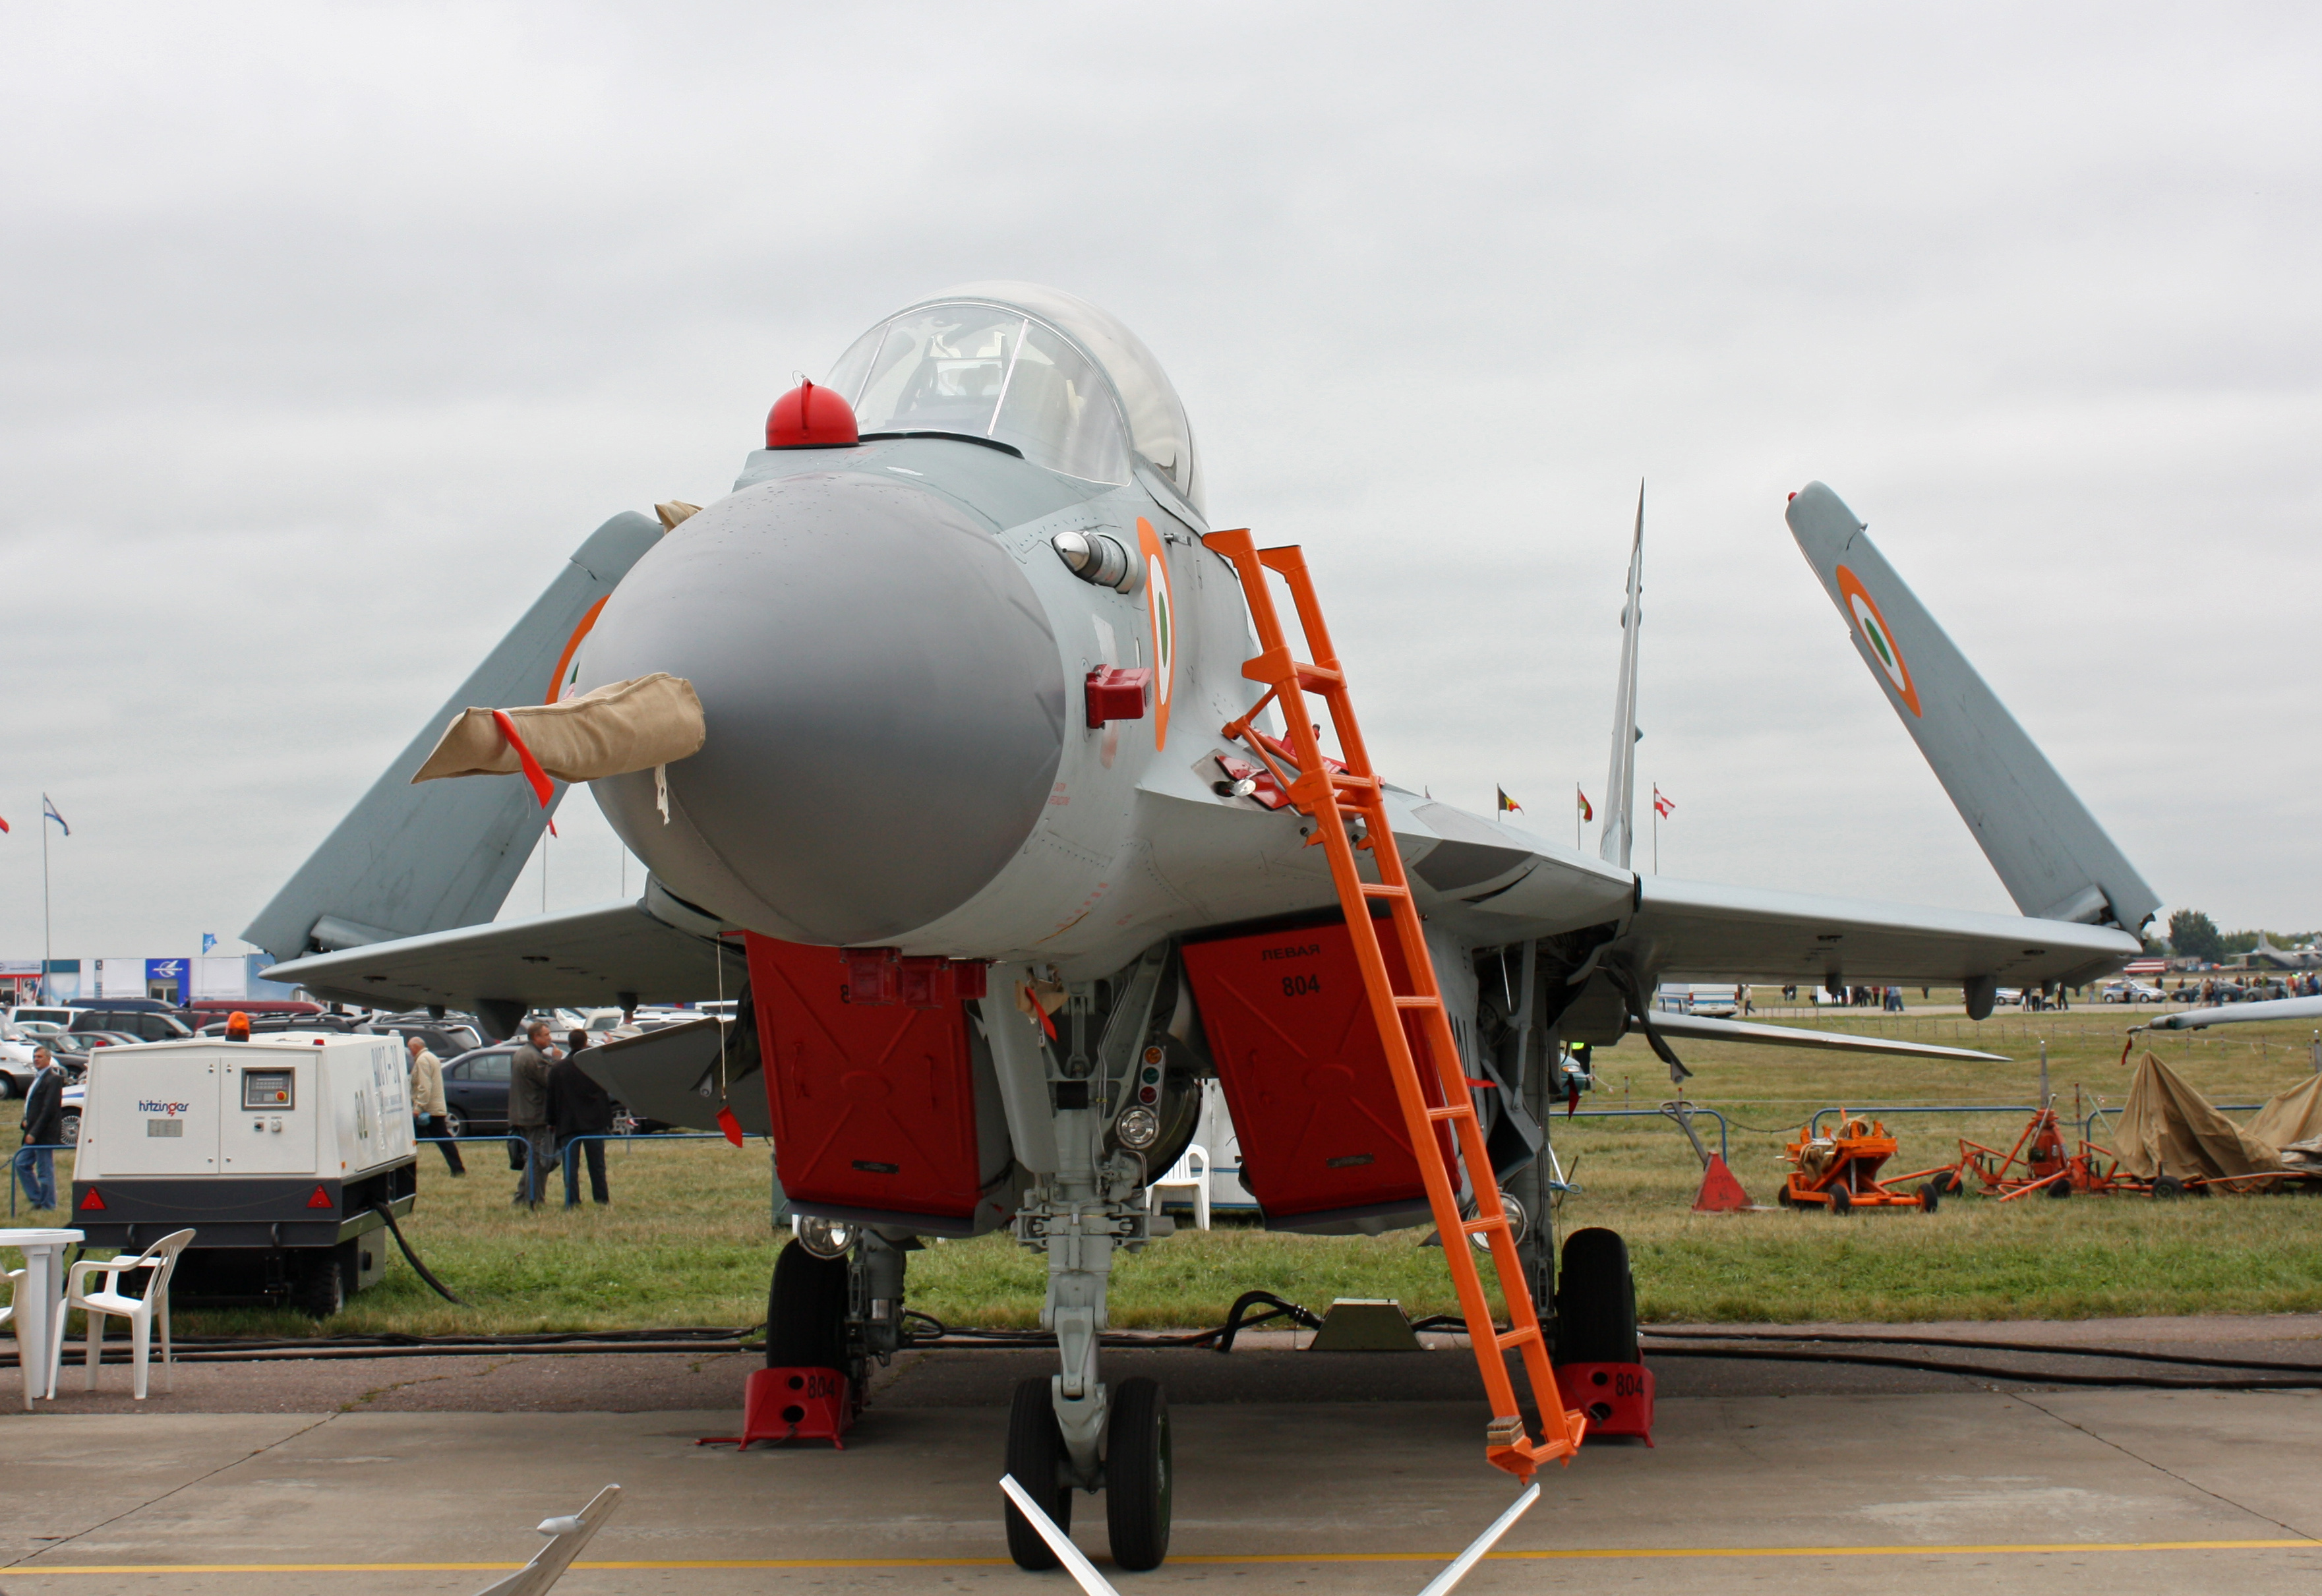 MiG-29K in Indian Navy colors at MAKS Airshow with Folding Wings for carrier operations